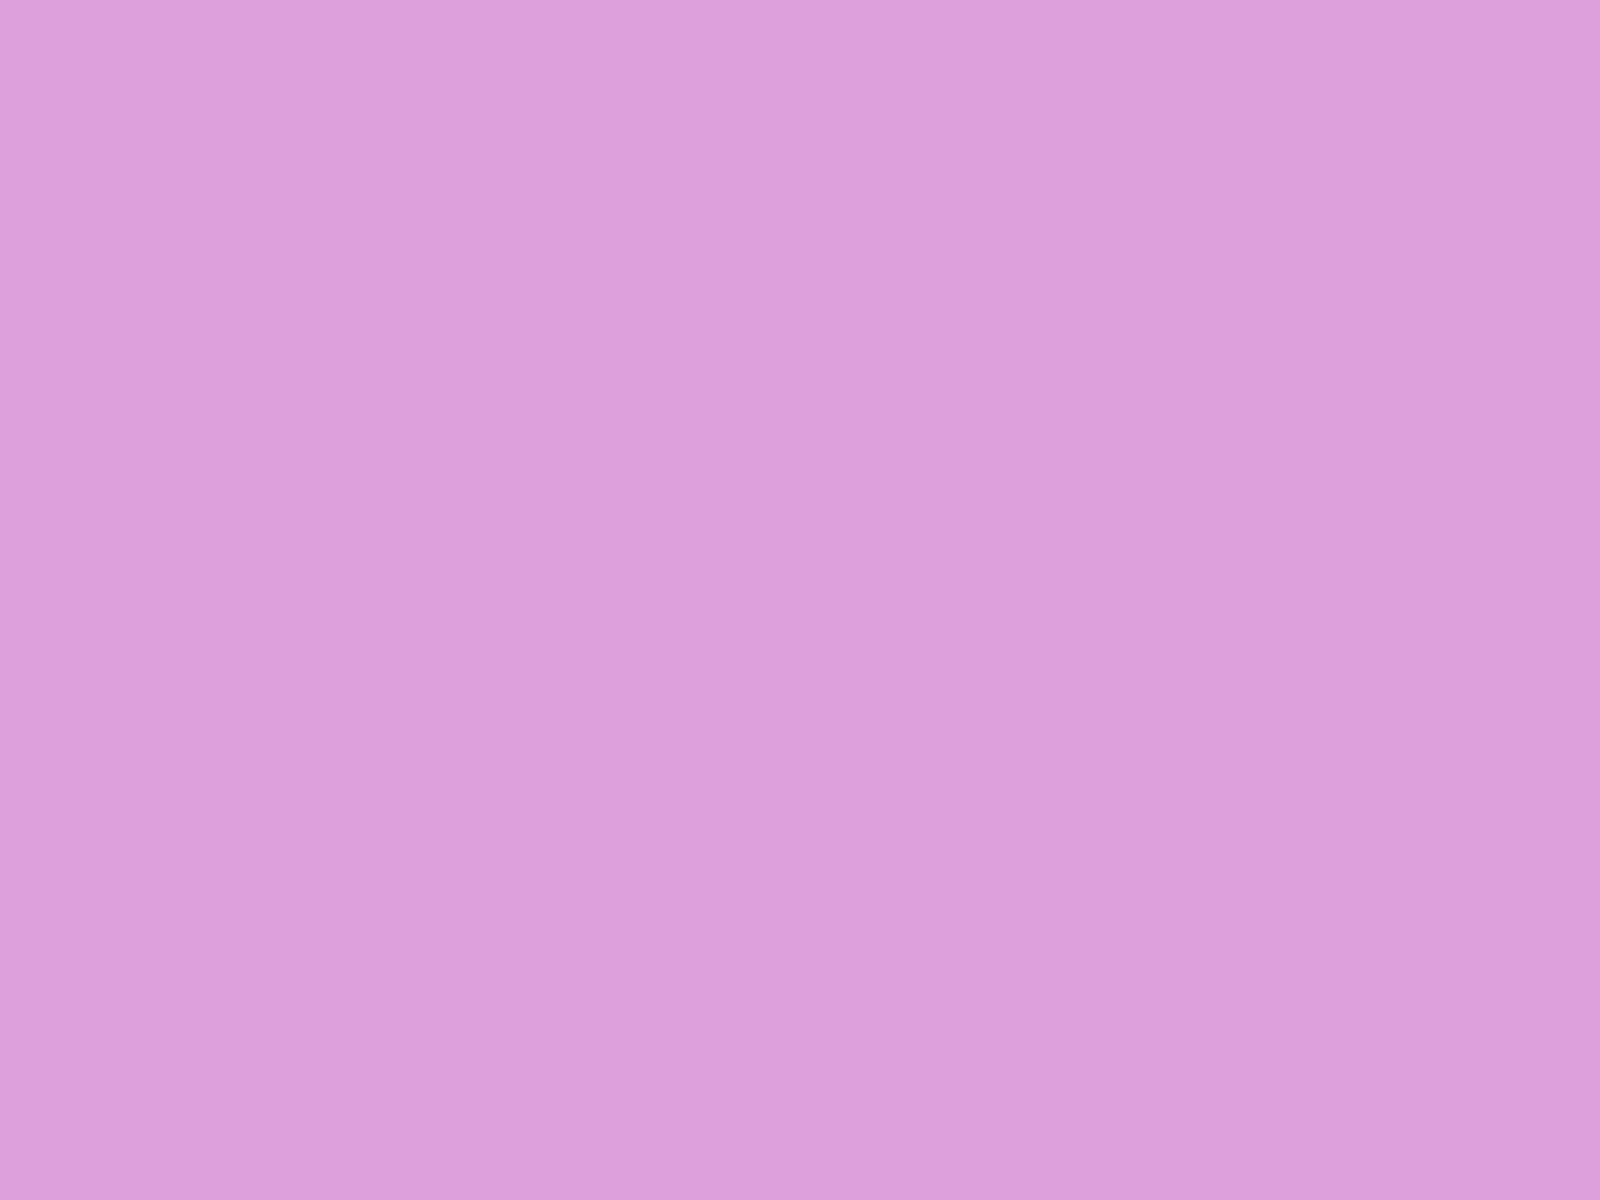 1600x1200 Plum Web Solid Color Background